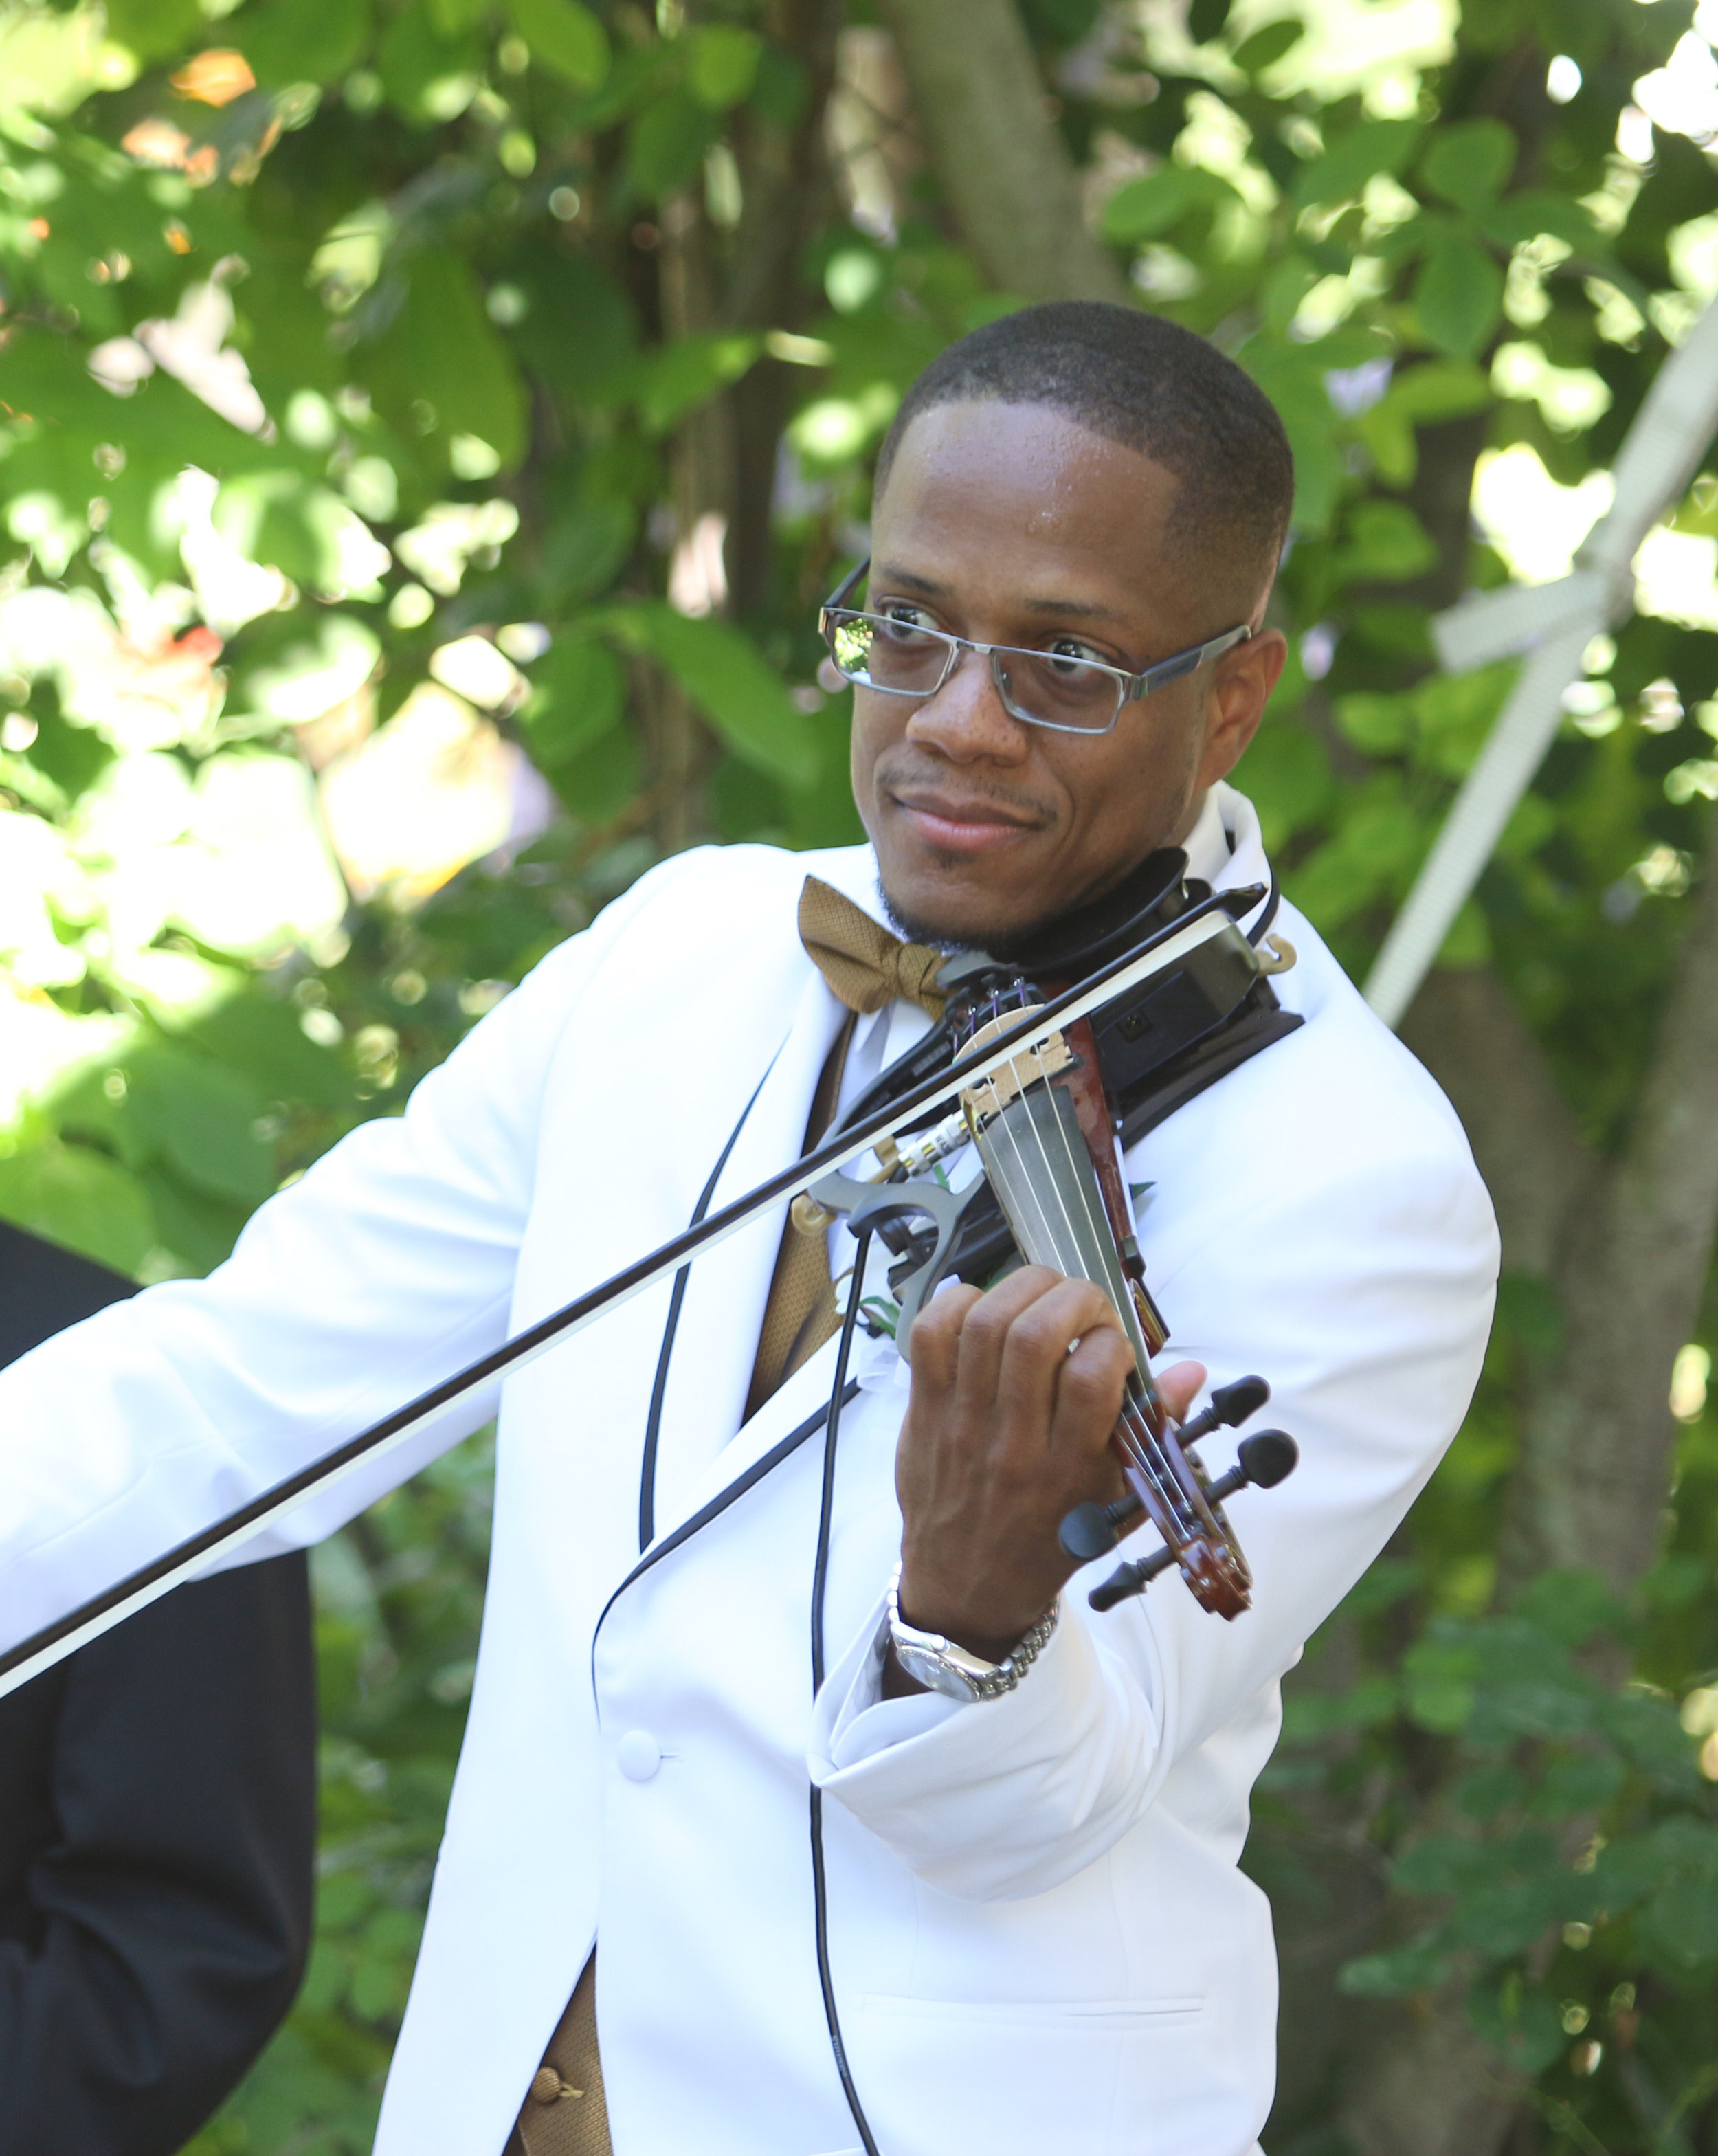 Lasting memories - Your Wedding Violinist will help you create lasting memories for your special day.